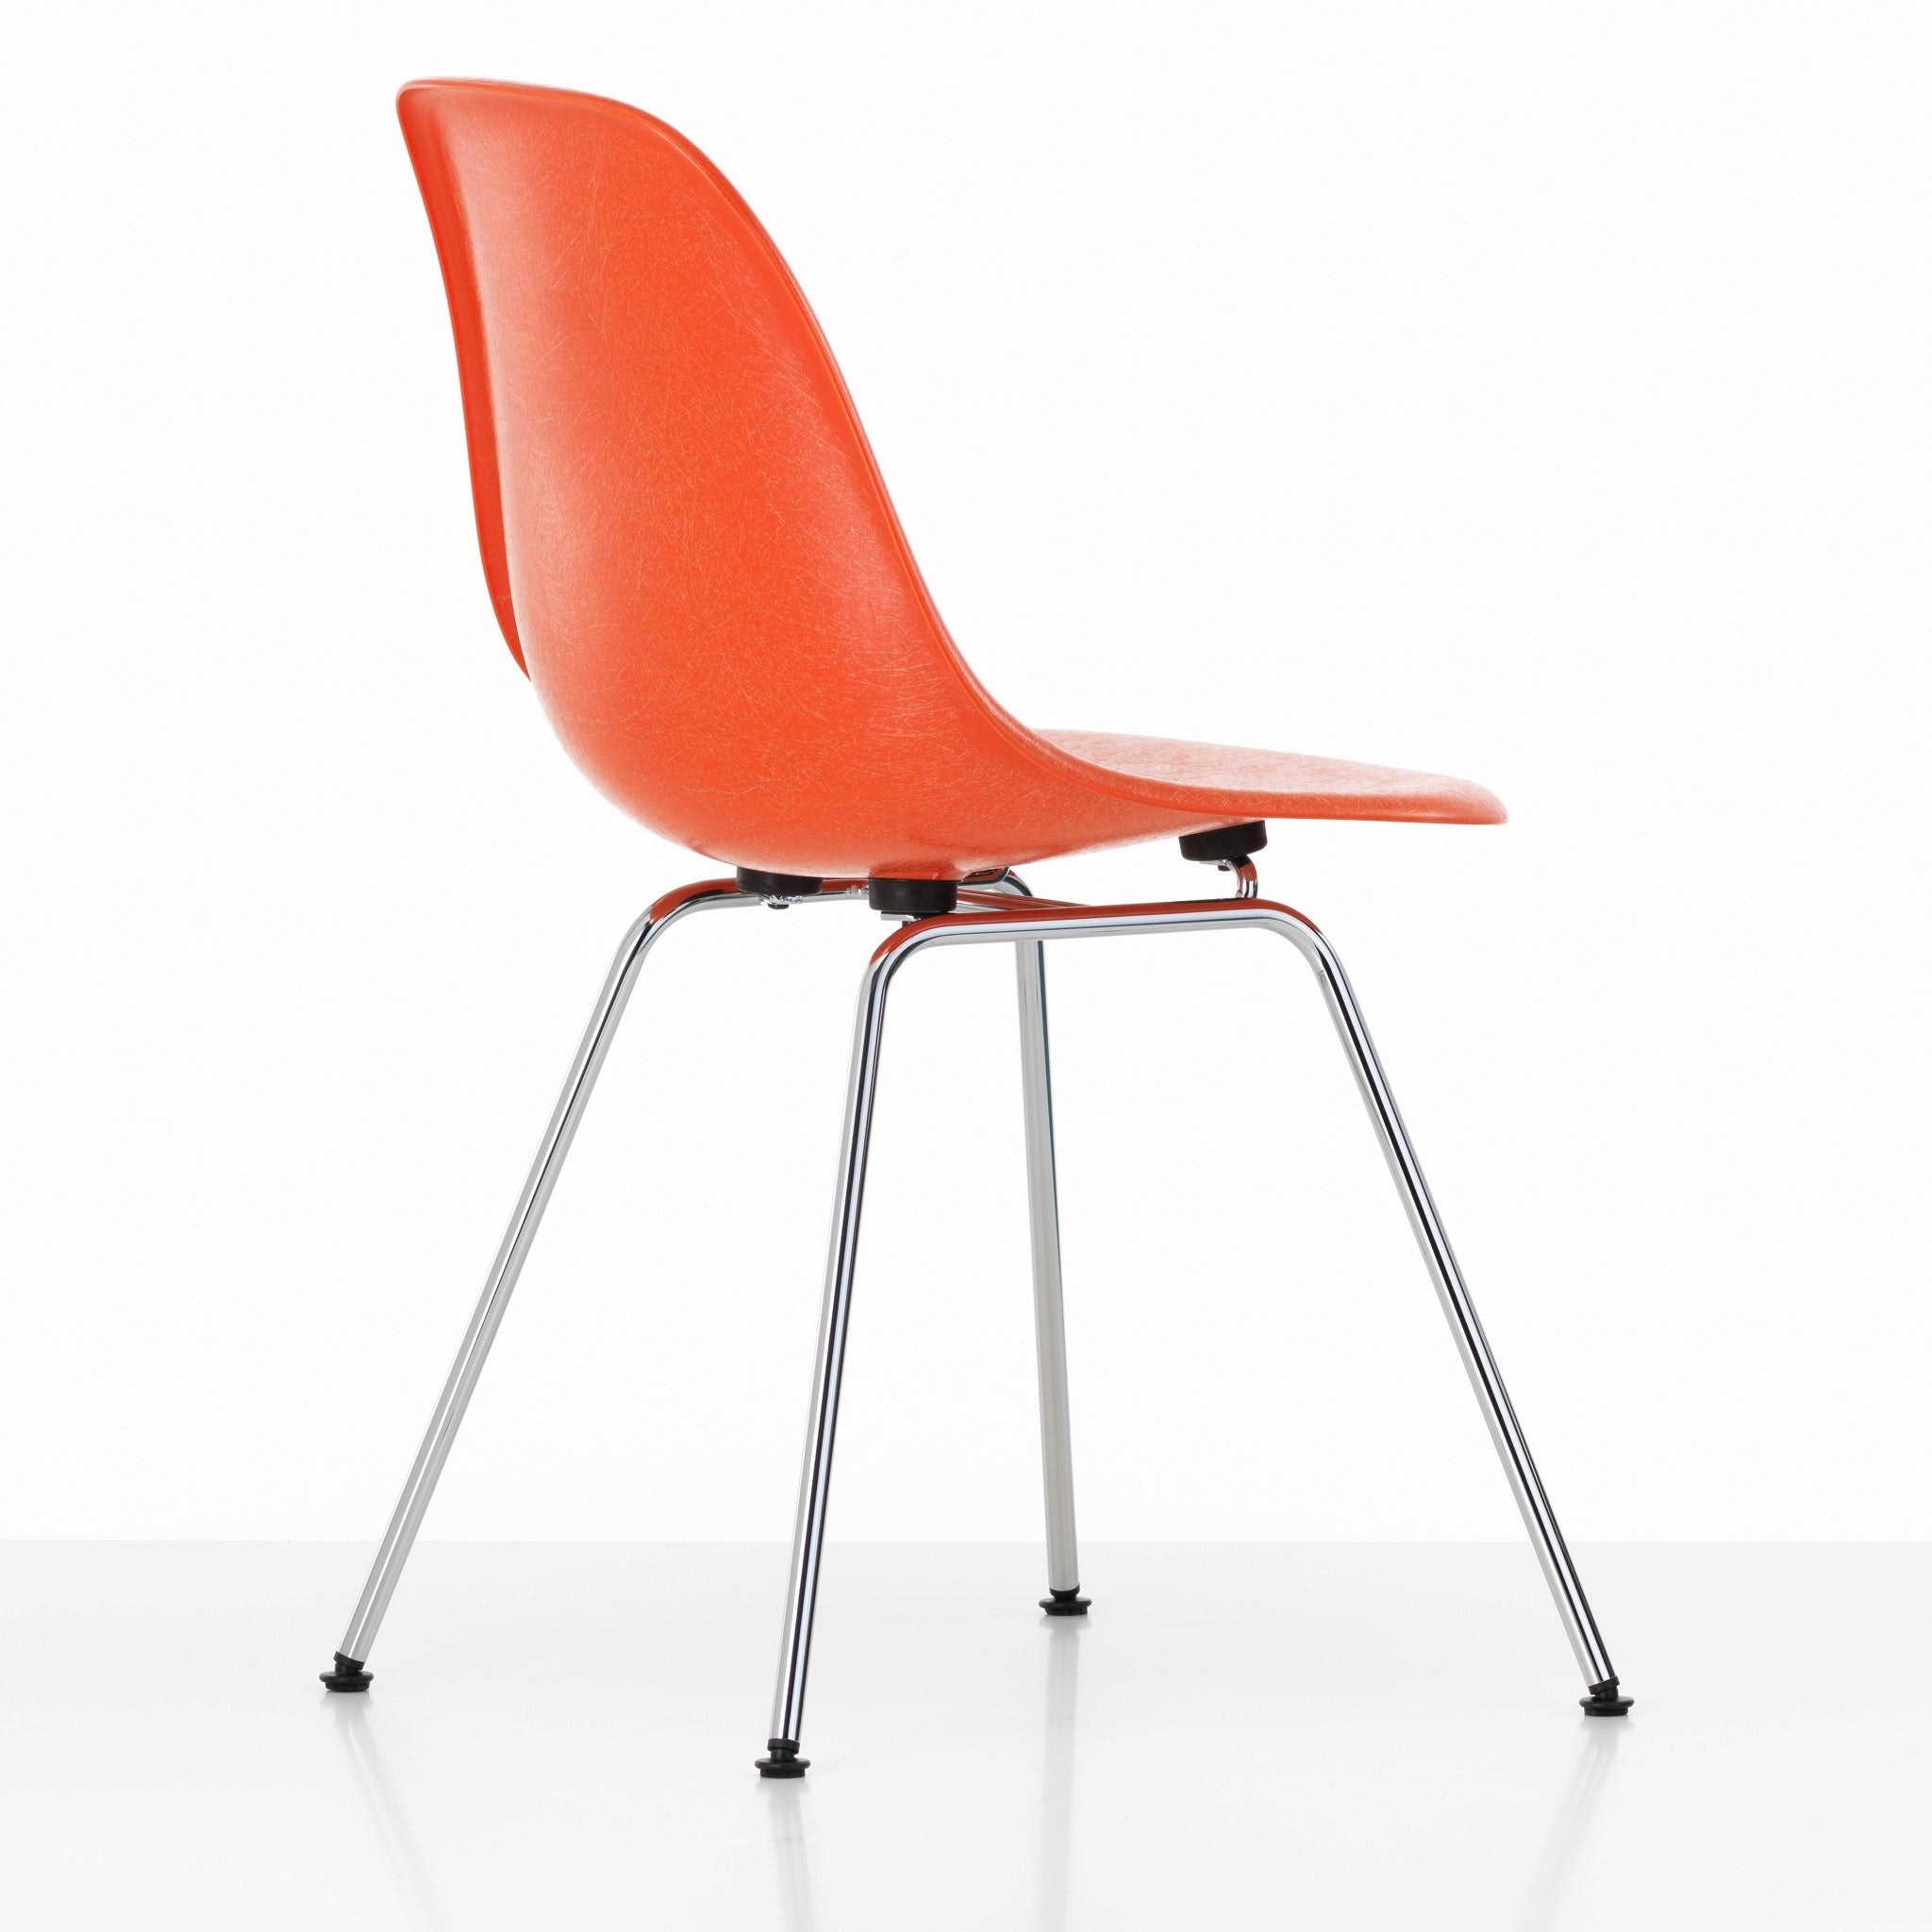 Eames Fiberglass Chair DSX by Vitra